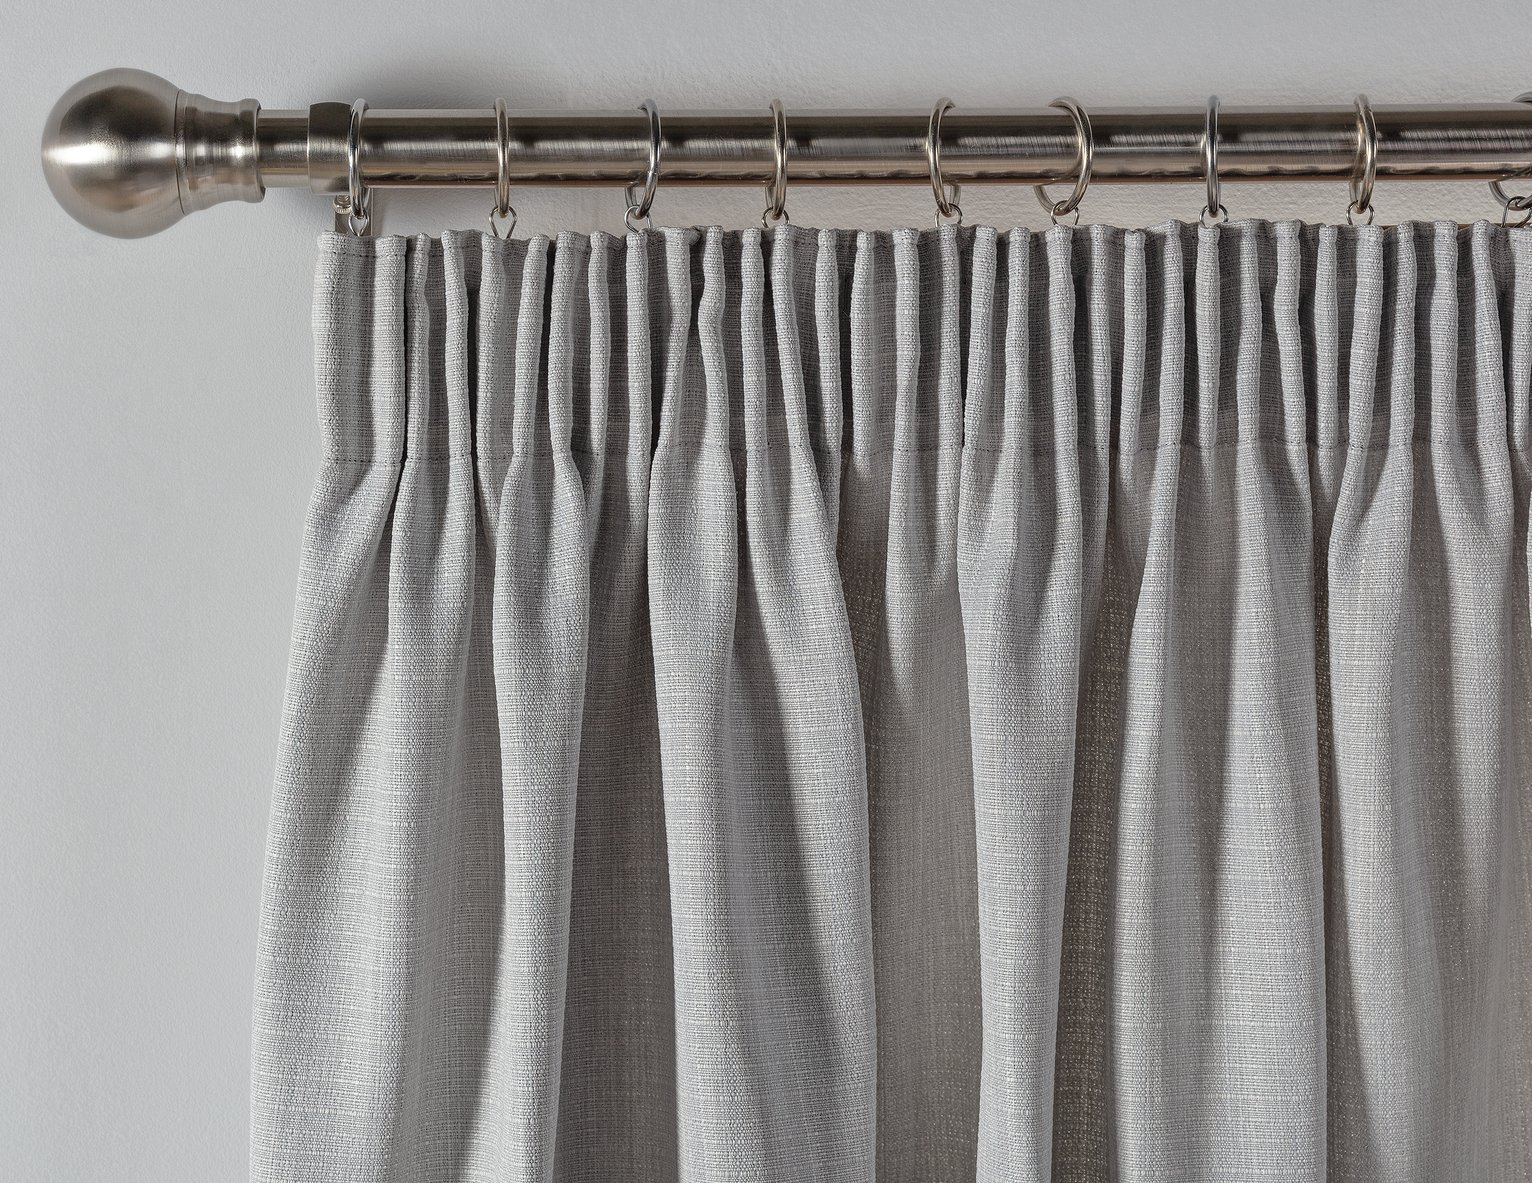 Argos Home Thermal Blackout Pencil Pleat Curtains - Grey